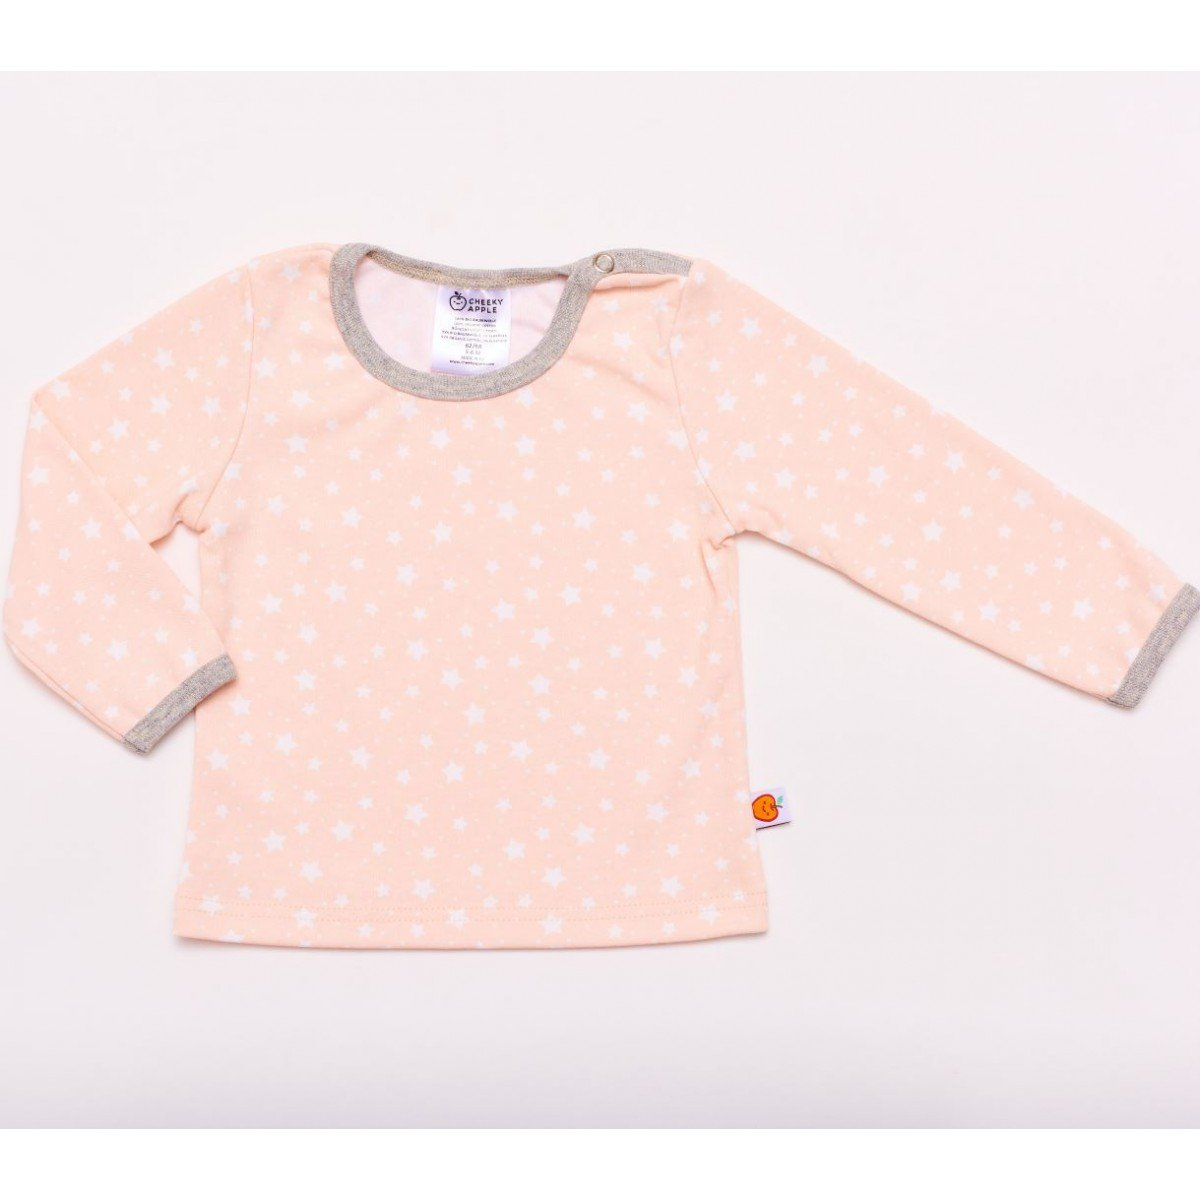 Cheeky Apple - Langarm Shirt Starry sky peach blush